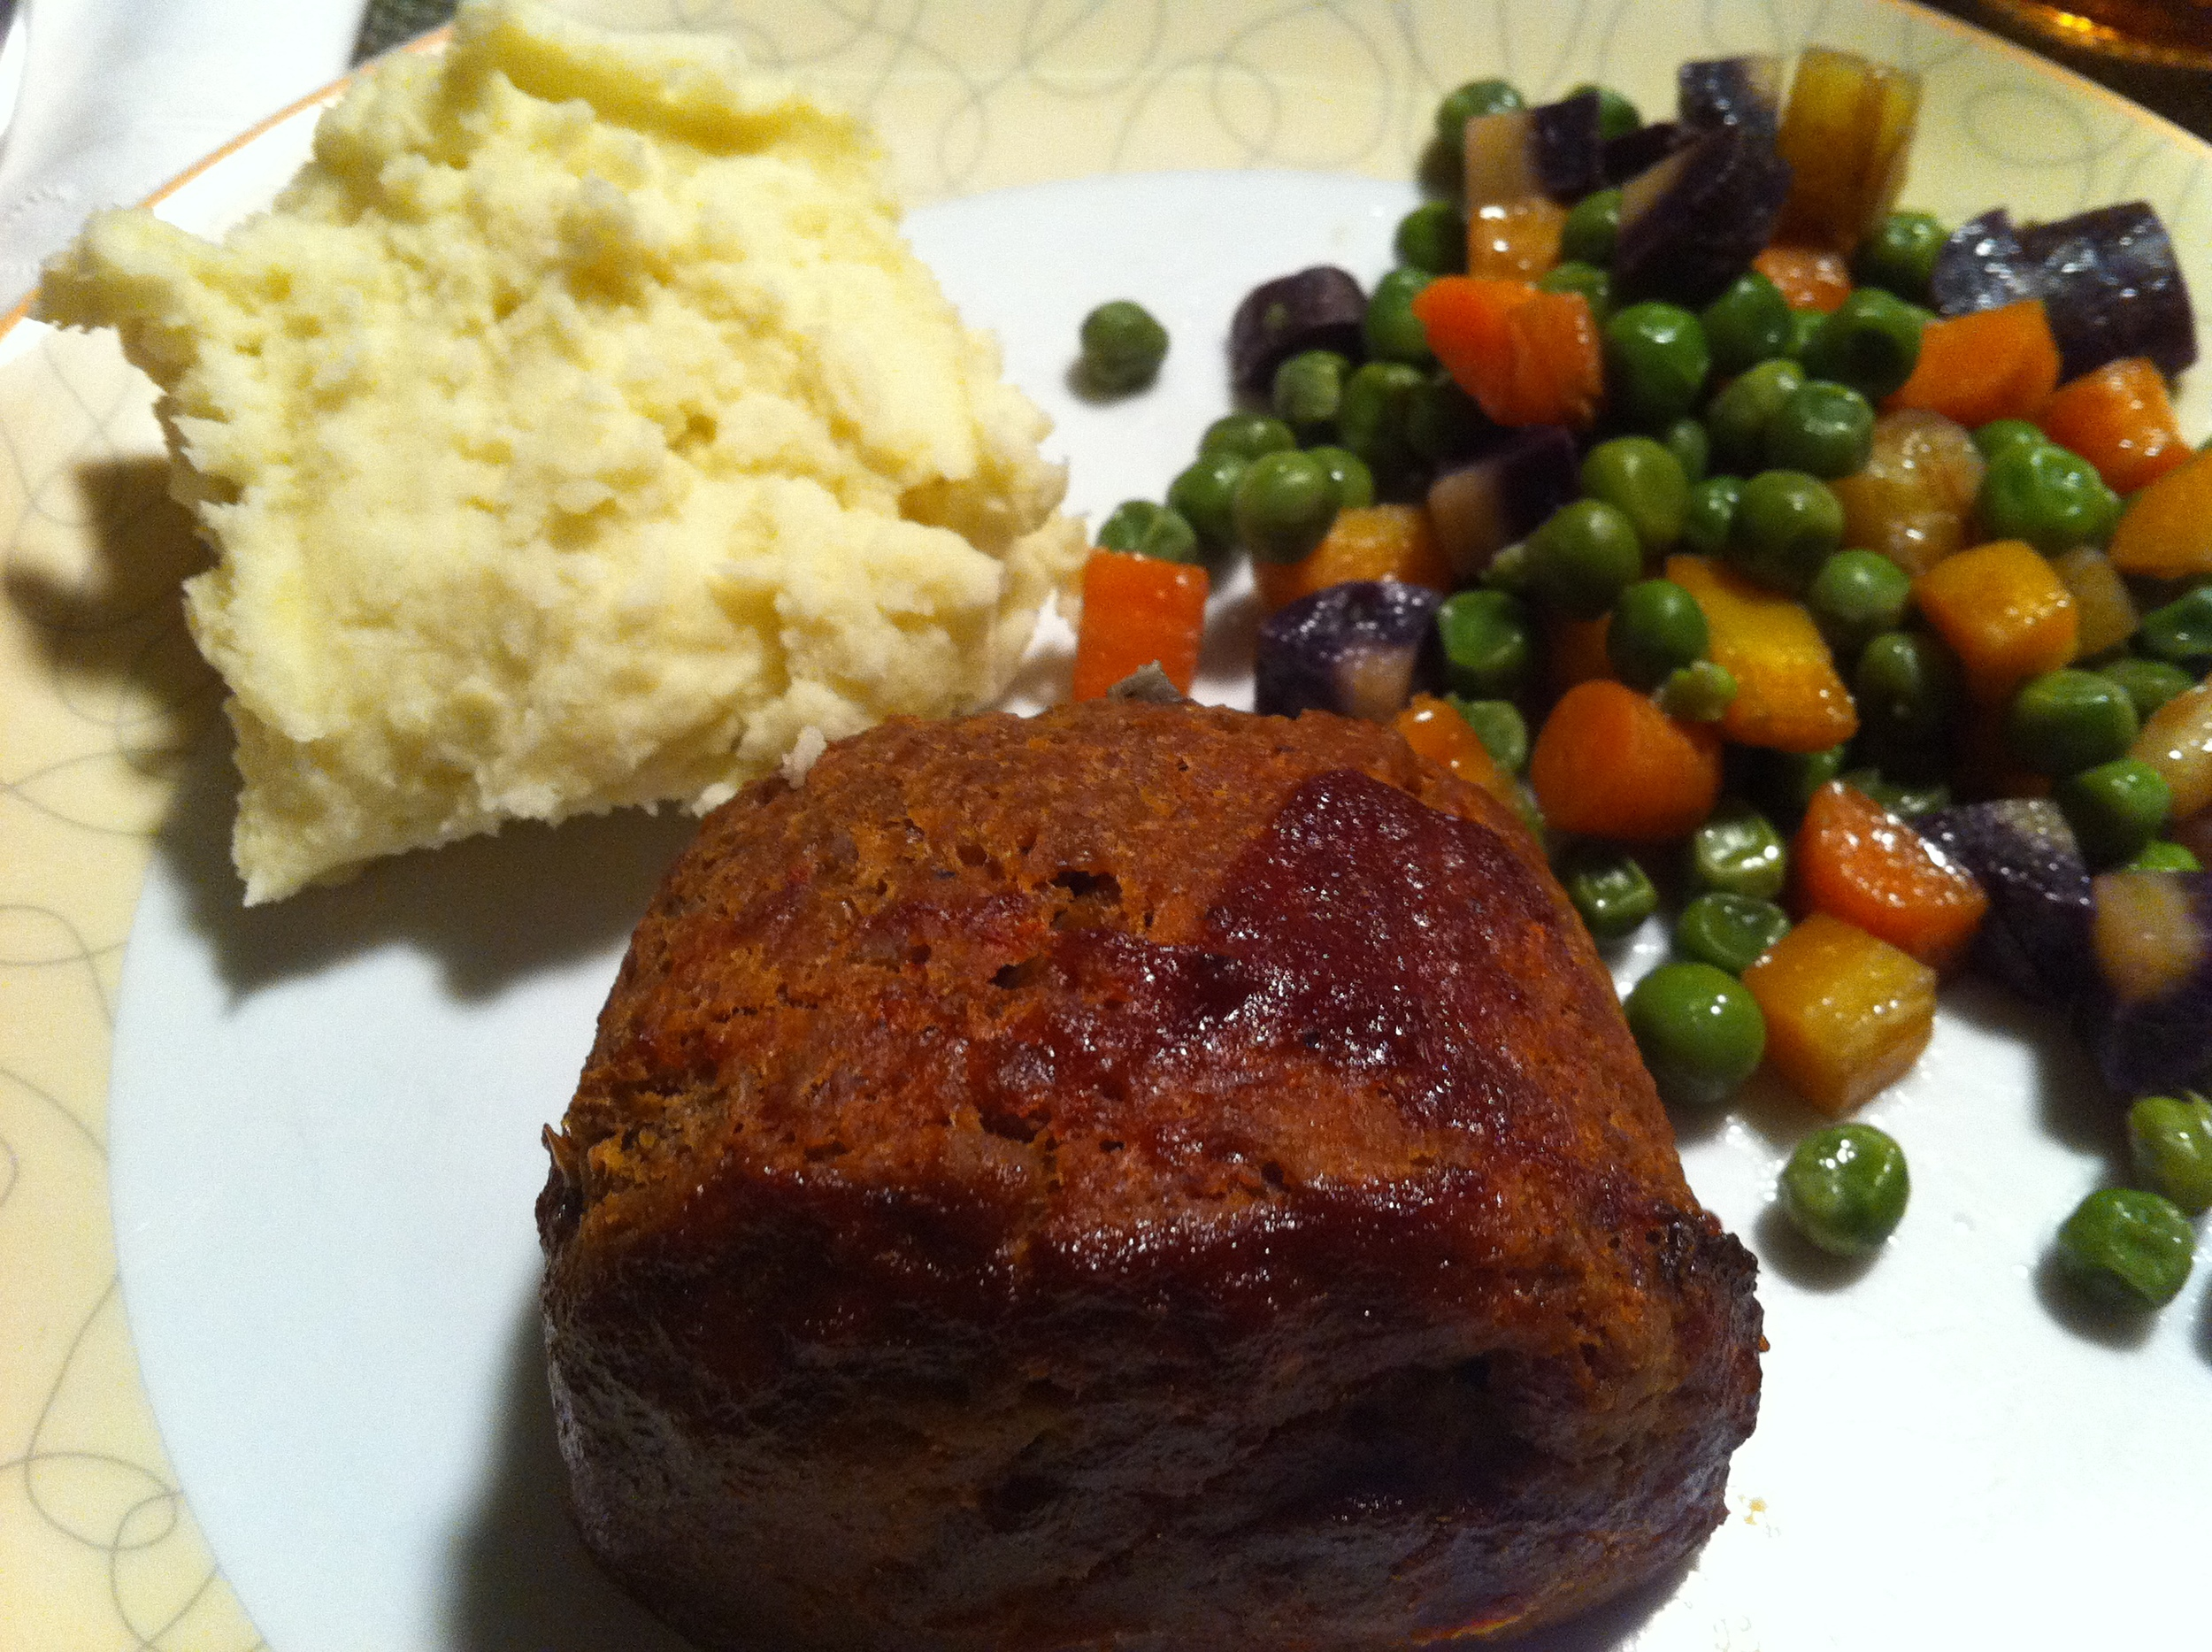 Field Roast meatloaf and mashed potatoes and peas and carrots make an amazingly retro dinner.